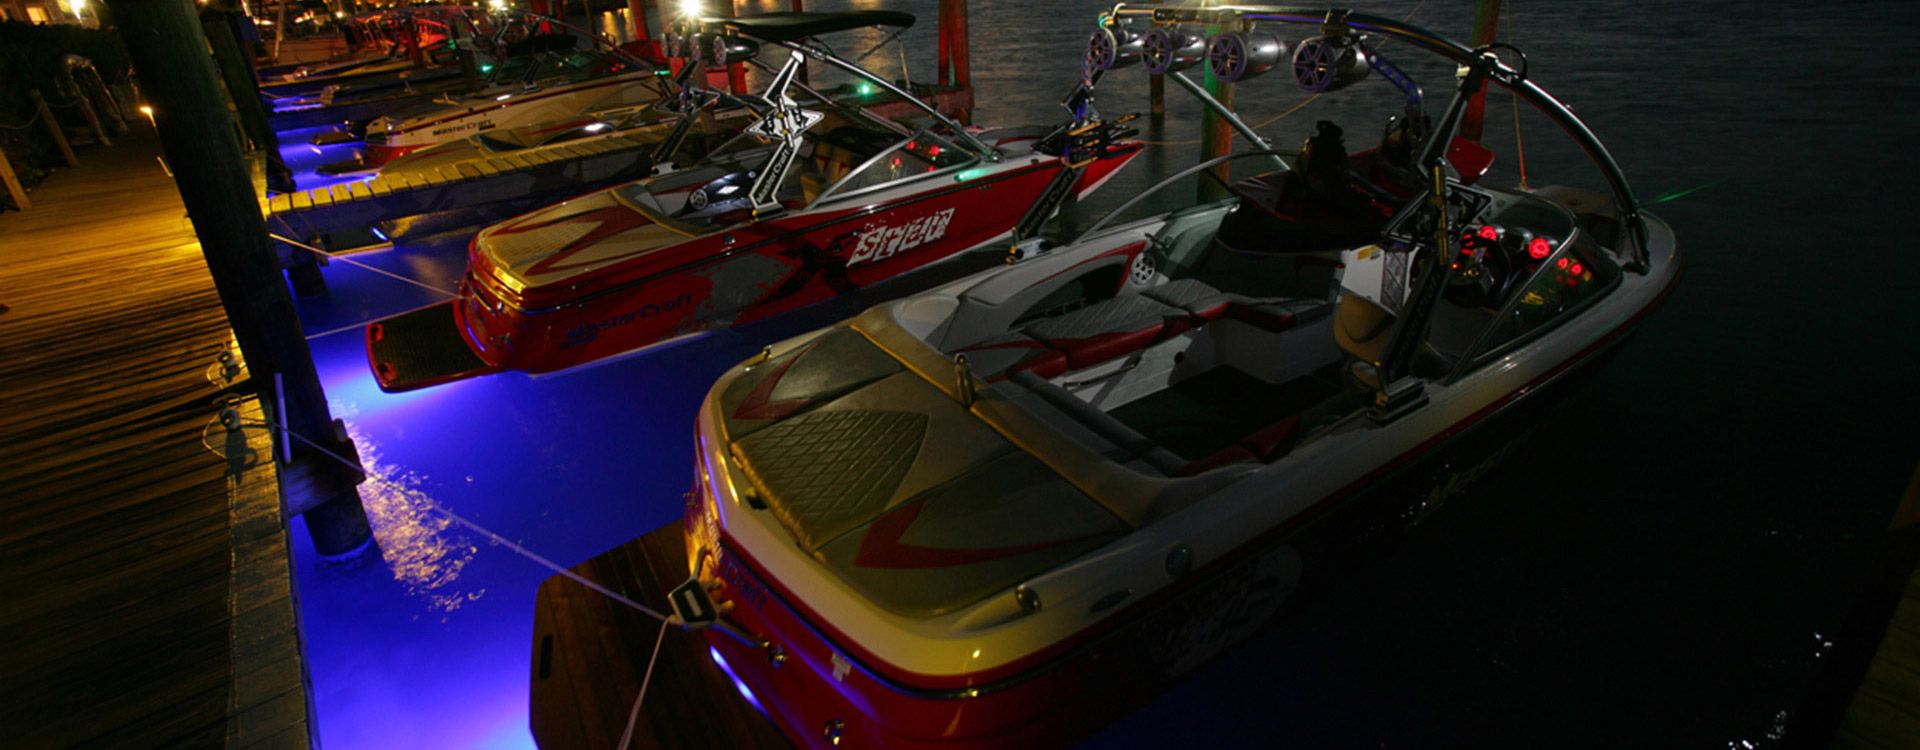 LED Boat Lights & Marine Lights